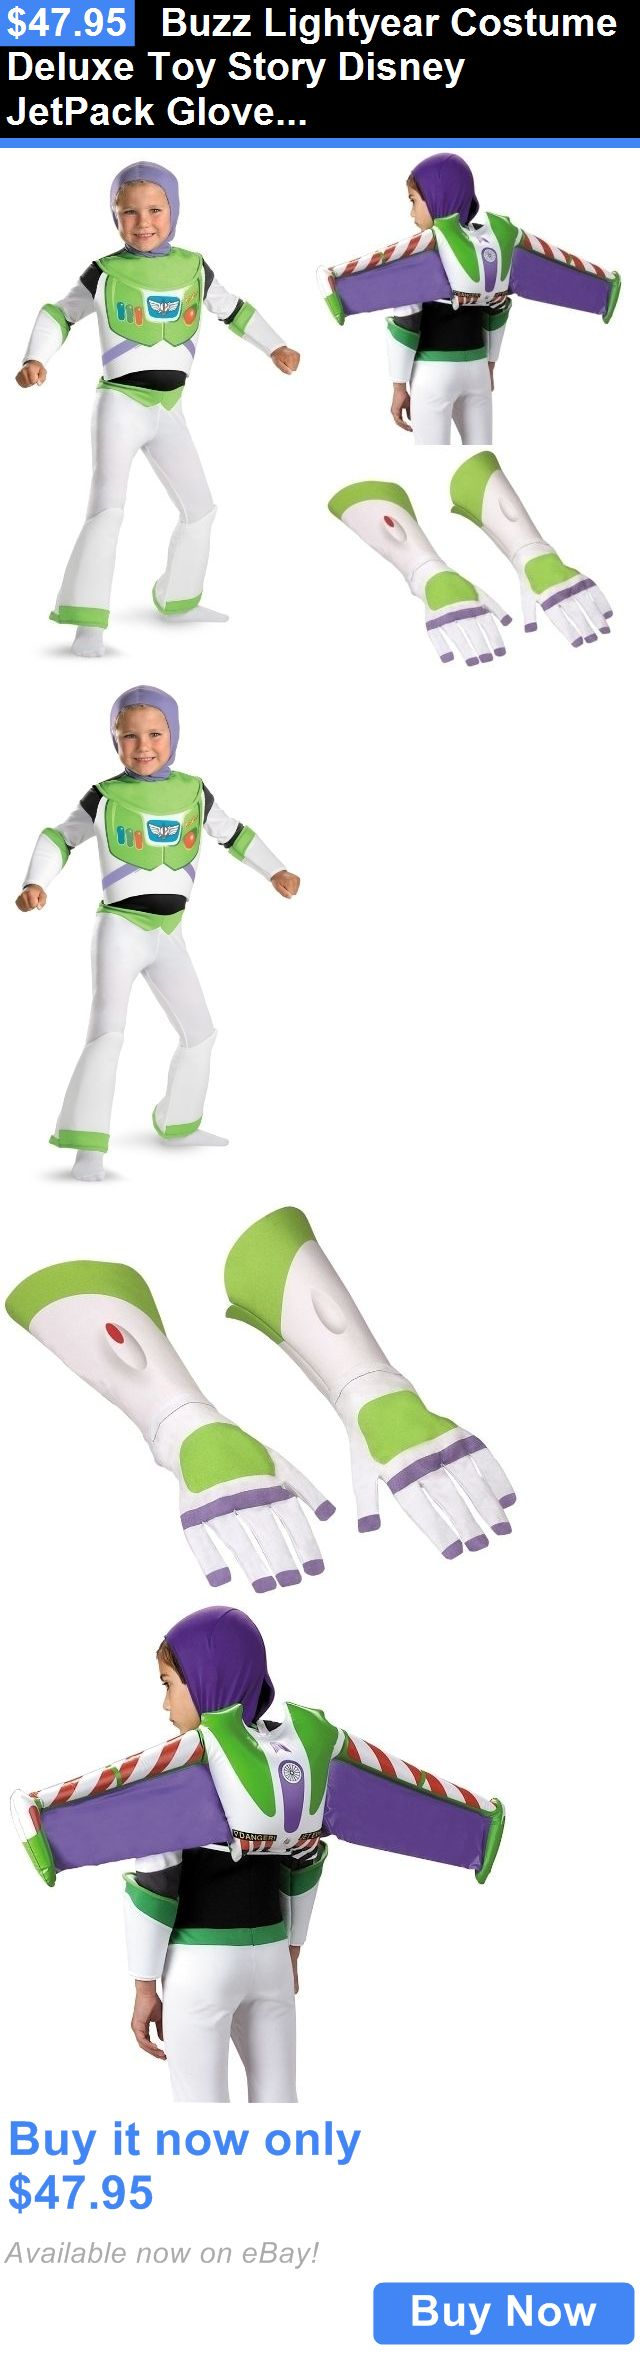 Kids Costumes: Buzz Lightyear Costume Deluxe Toy Story Disney Jetpack Gloves Astronaut Space BUY IT NOW ONLY: $47.95